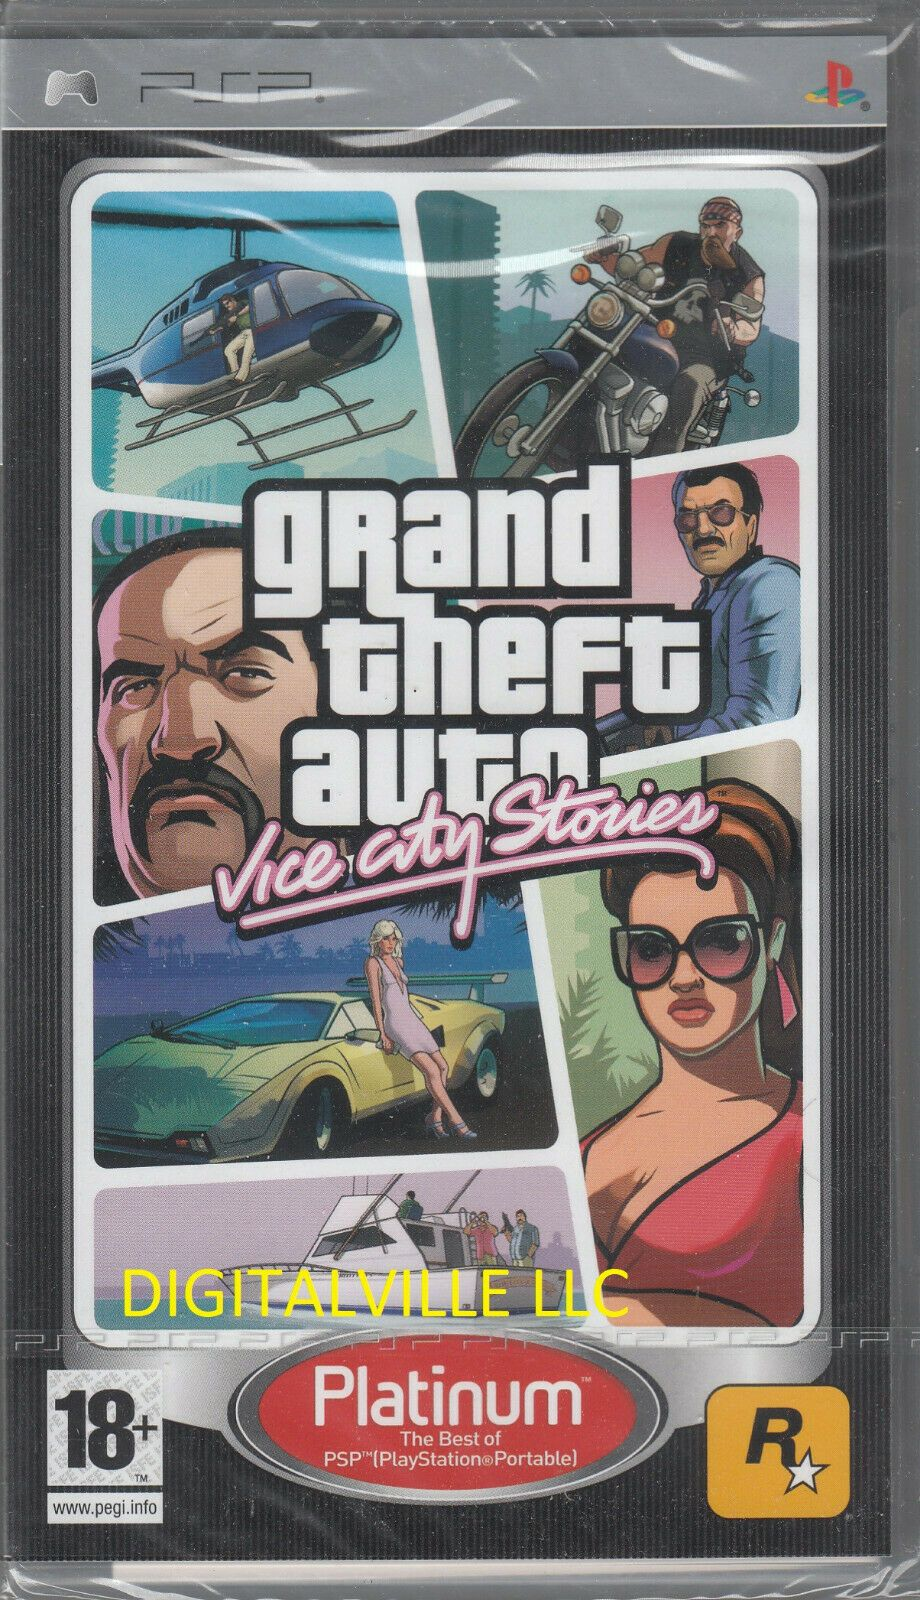 Grand Theft Auto Vice City Stories Sony Psp Brand New Factory Sealed Games Ideas Of Games Games Grand Theft Auto Vic Grand Theft Auto Theft Game Sales